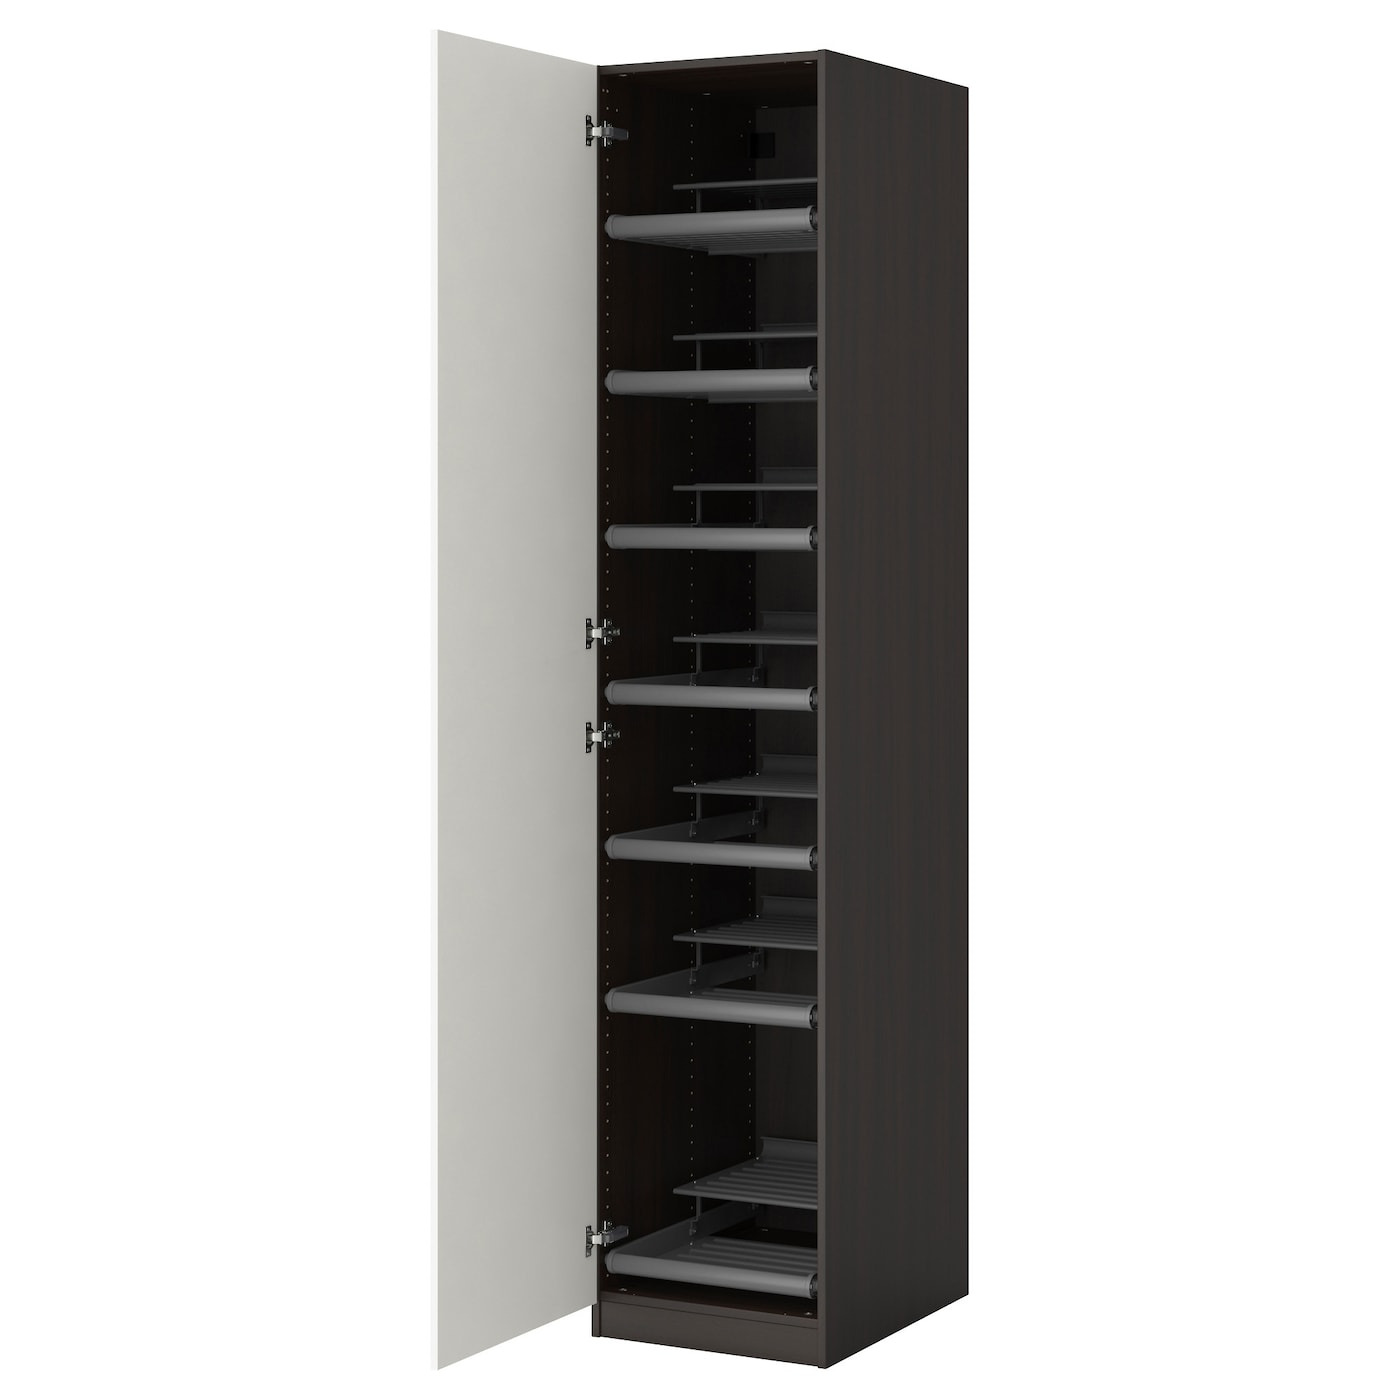 Pax wardrobe black brown ballstad white 50x60x236 cm ikea for Schuhschrank 70 x 200